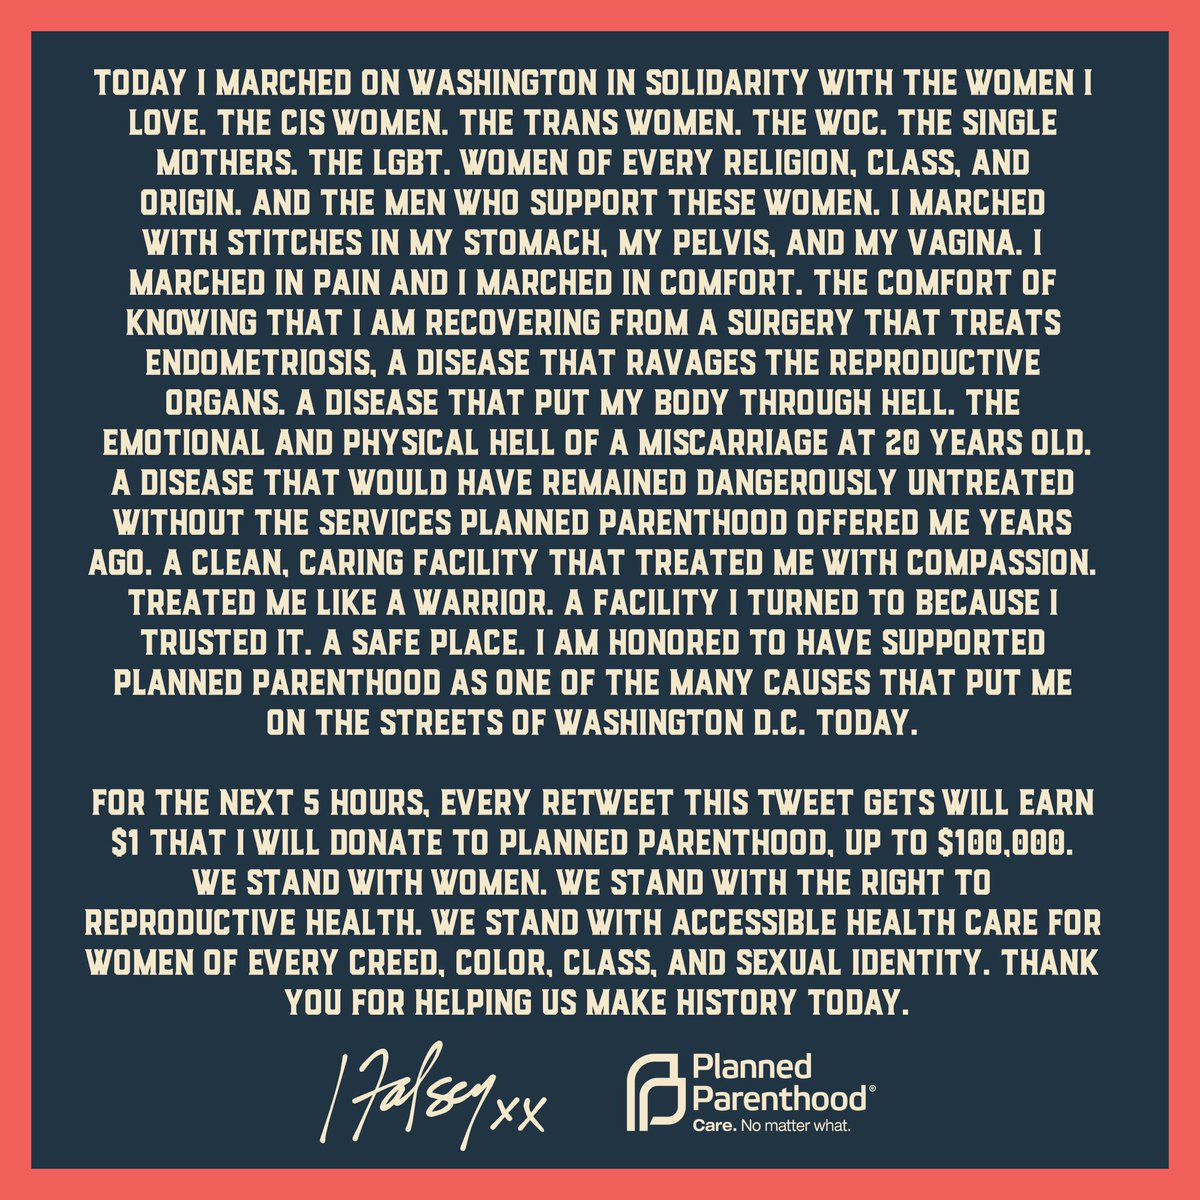 in the next 5 hours each RT = $1 donation by me to @PPact. Please read & share on why PP is important for all women. @CecileRichards